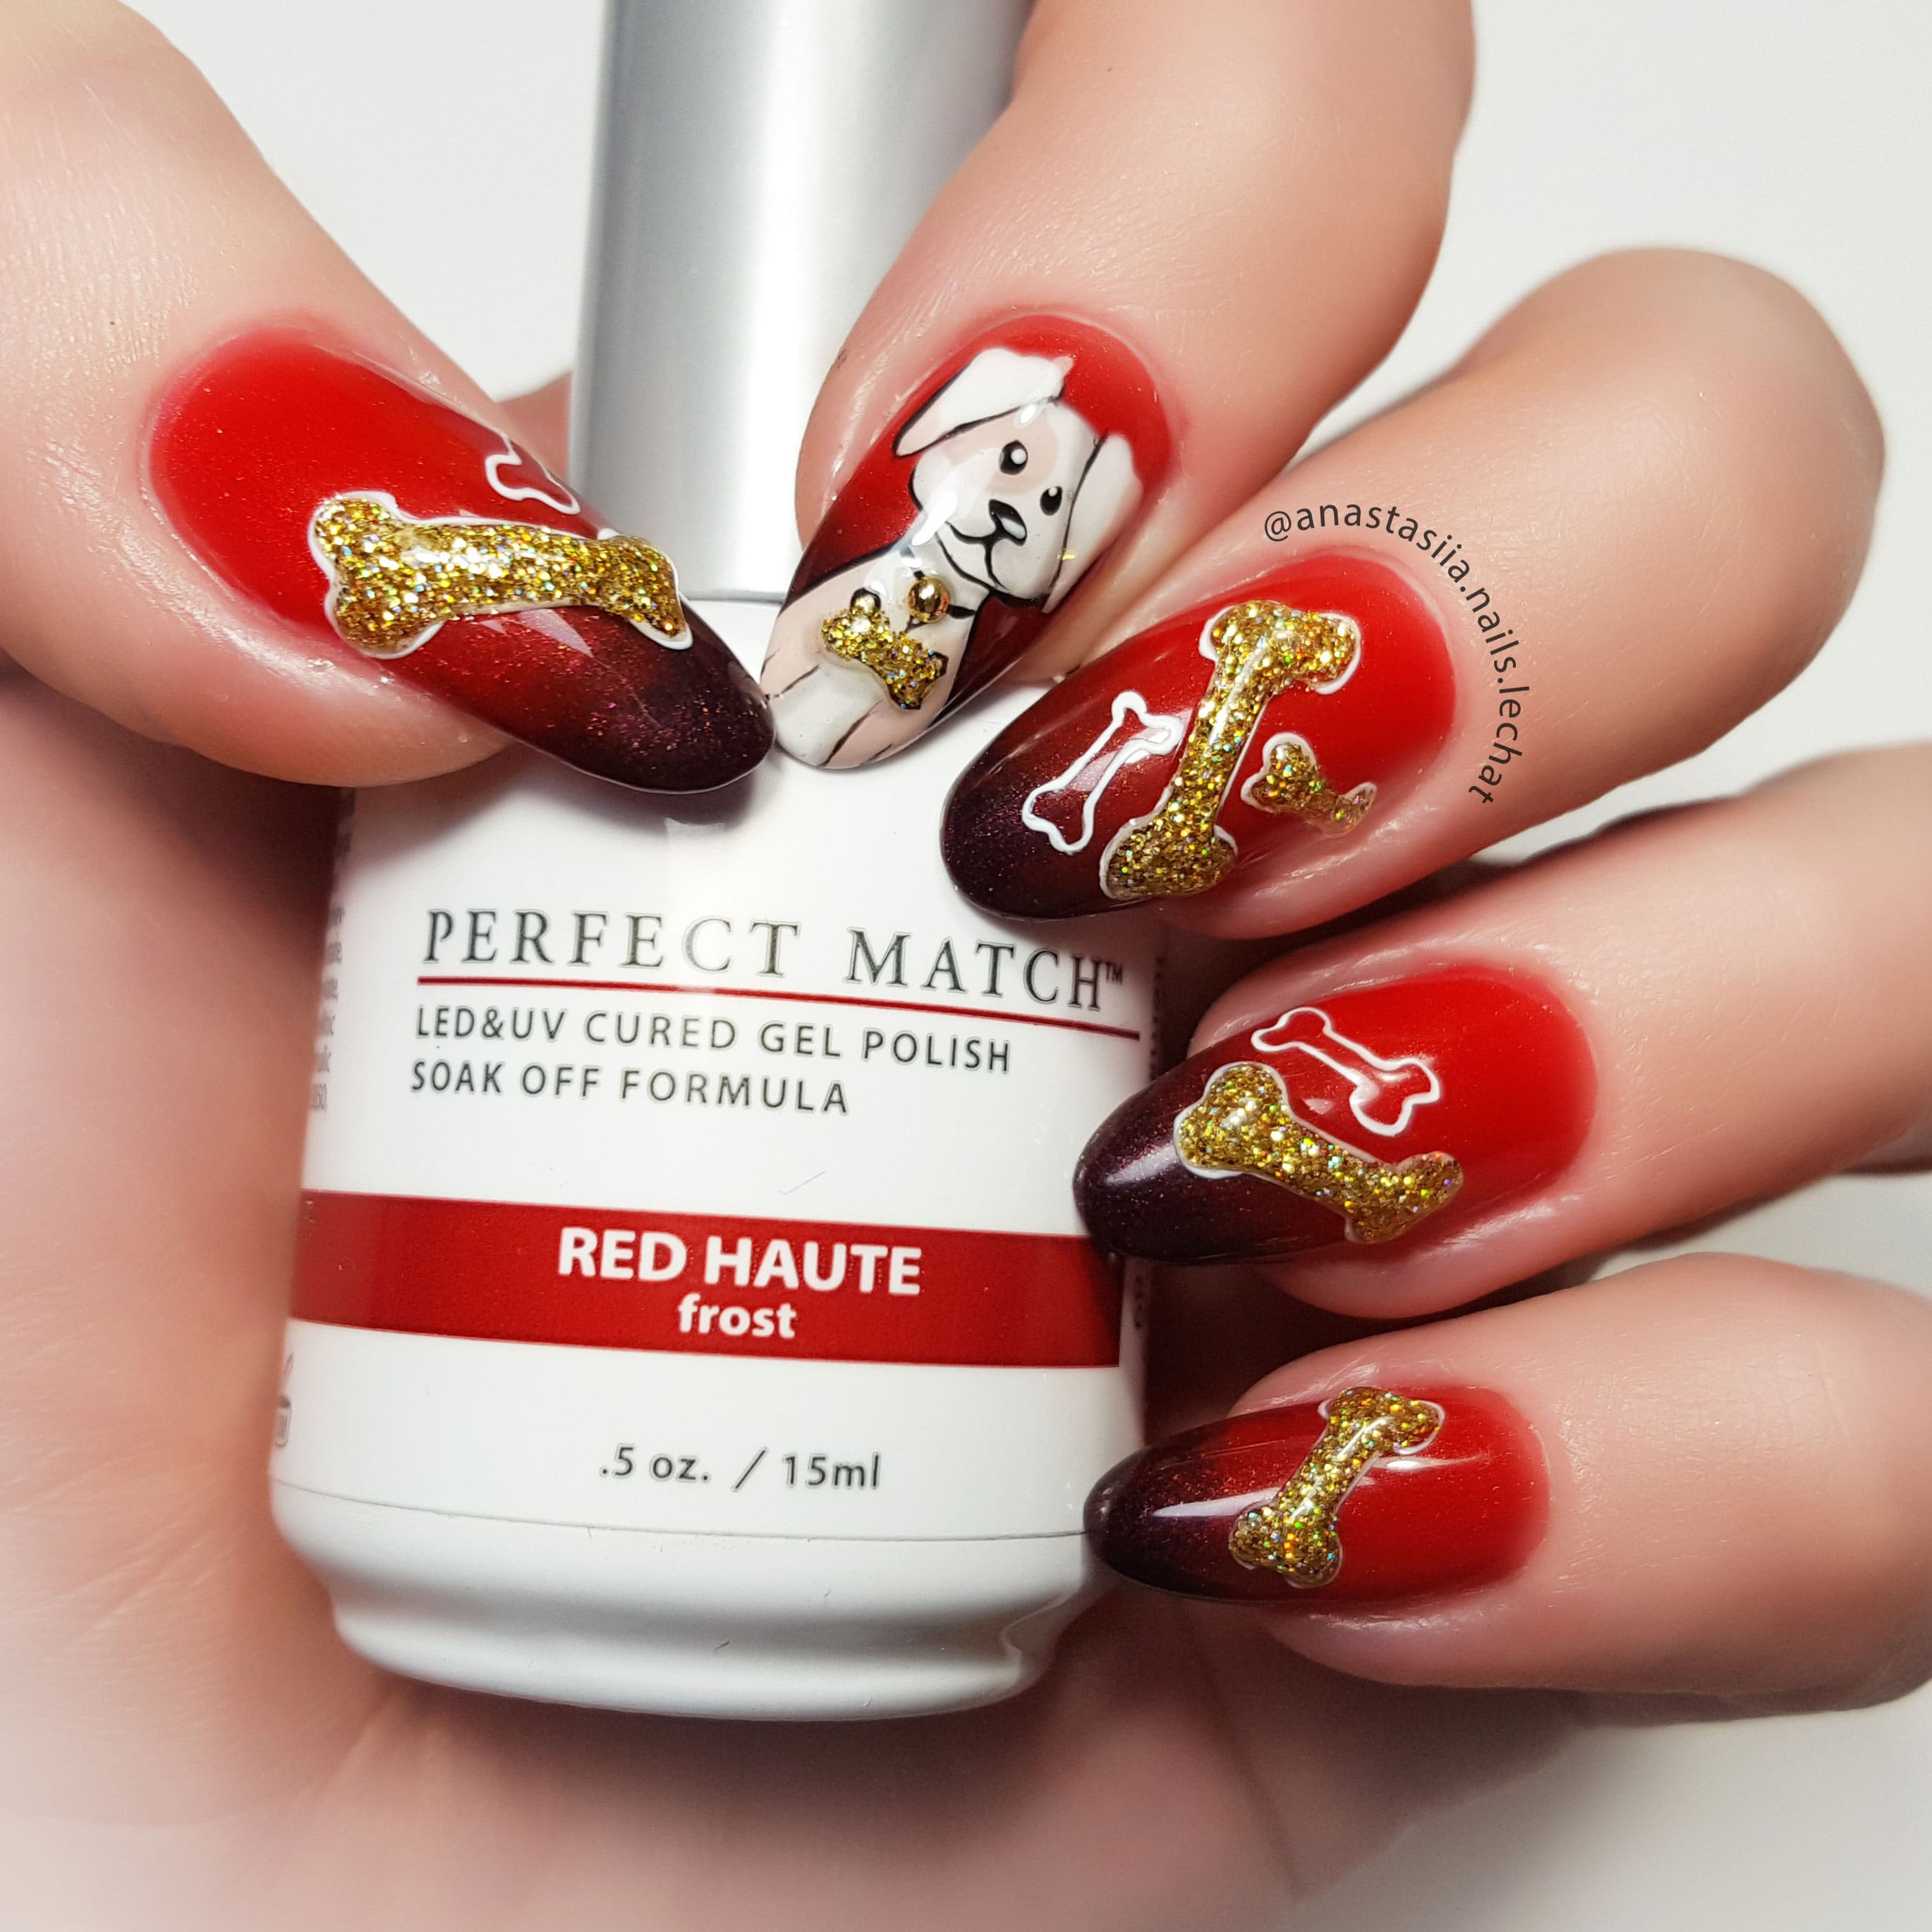 Pefect Match red haute